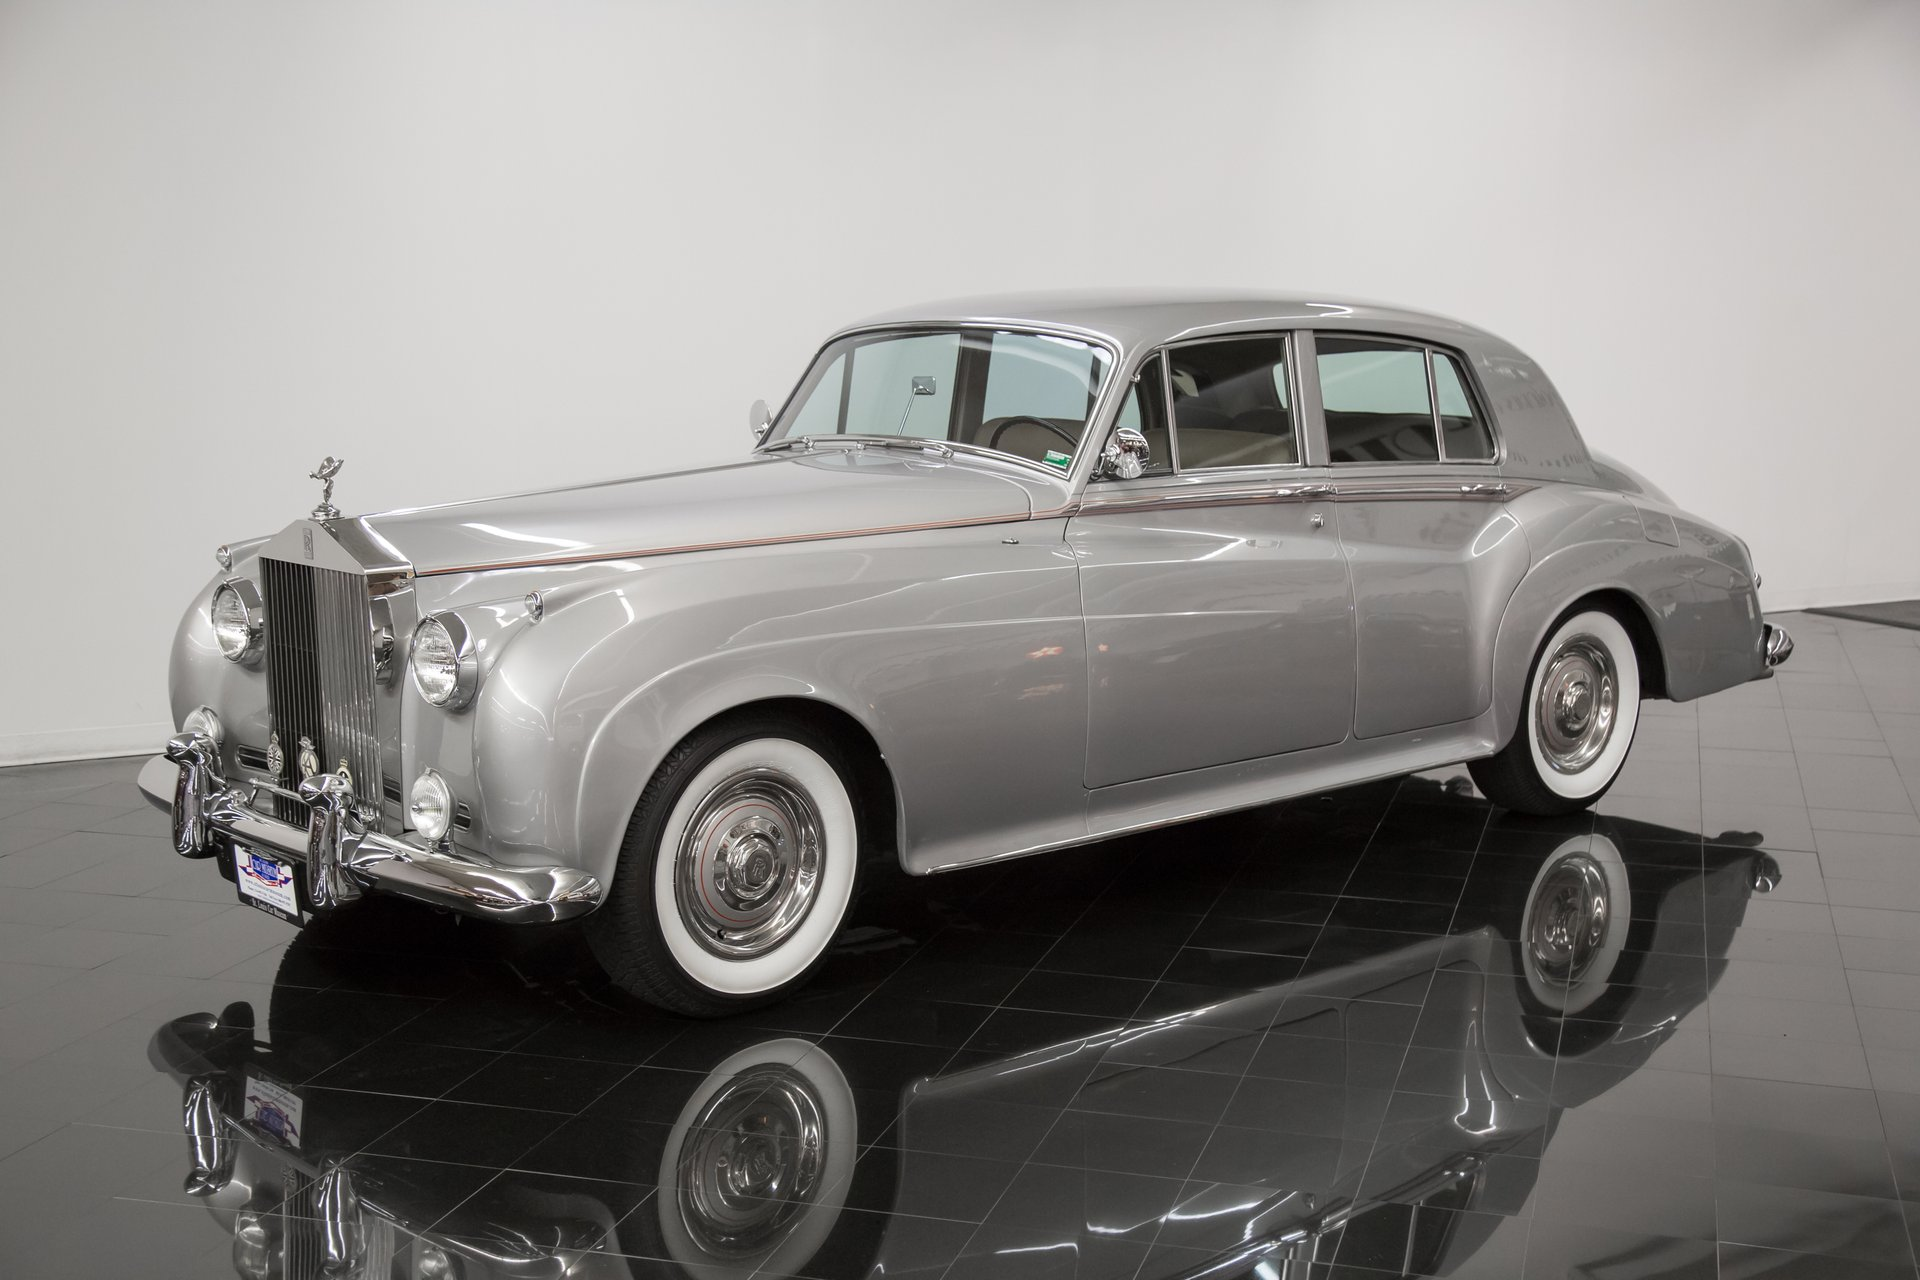 1958 rolls royce silver cloud i saloon